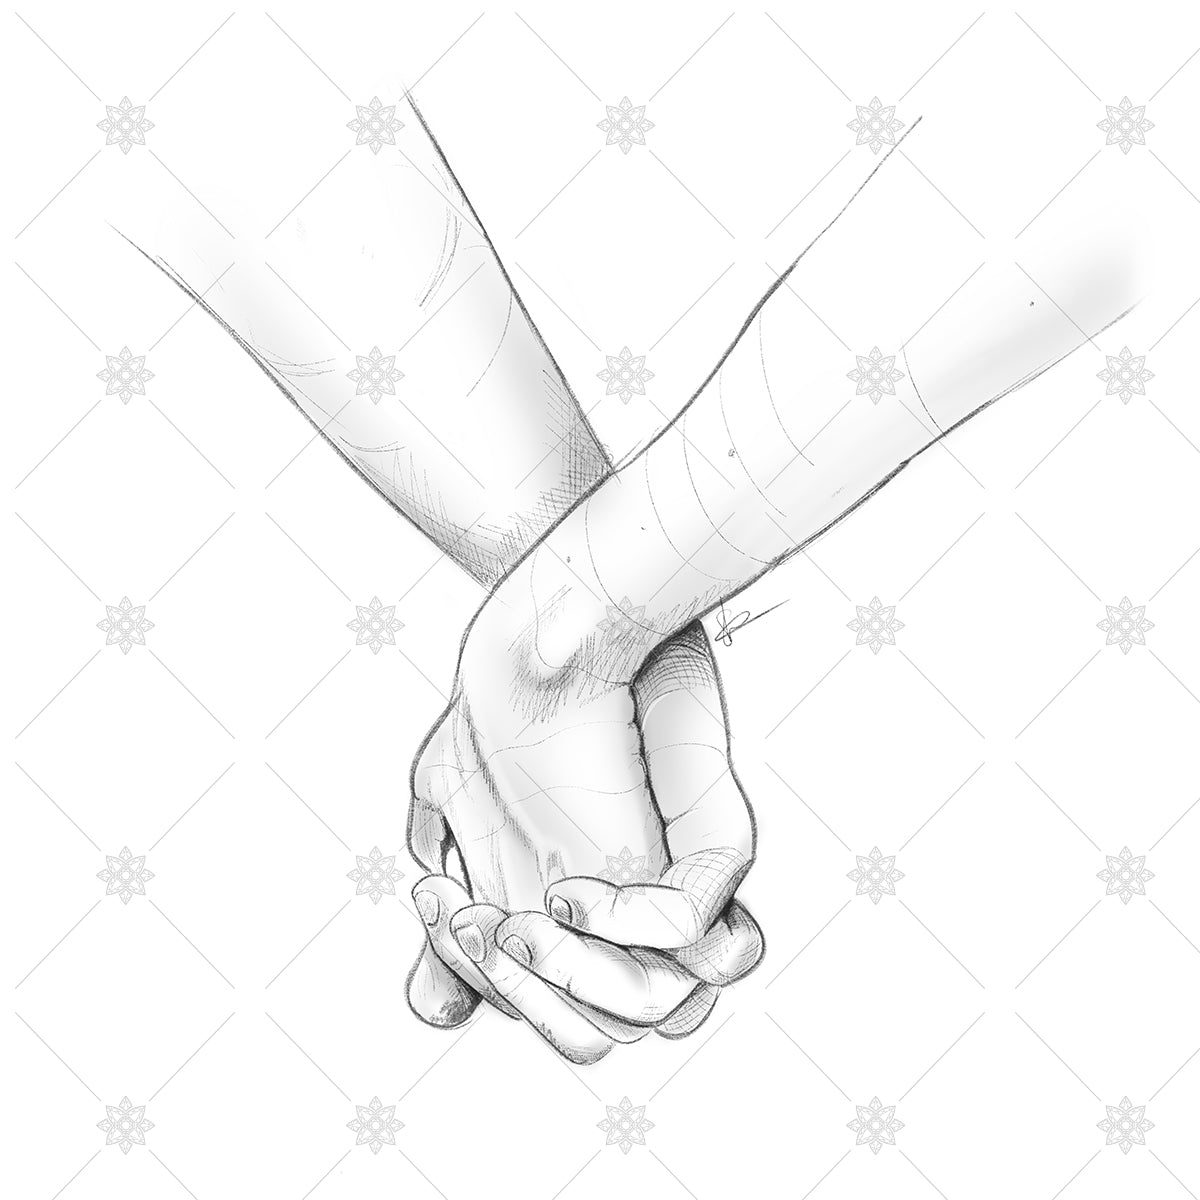 pencil sketch holding hands couple